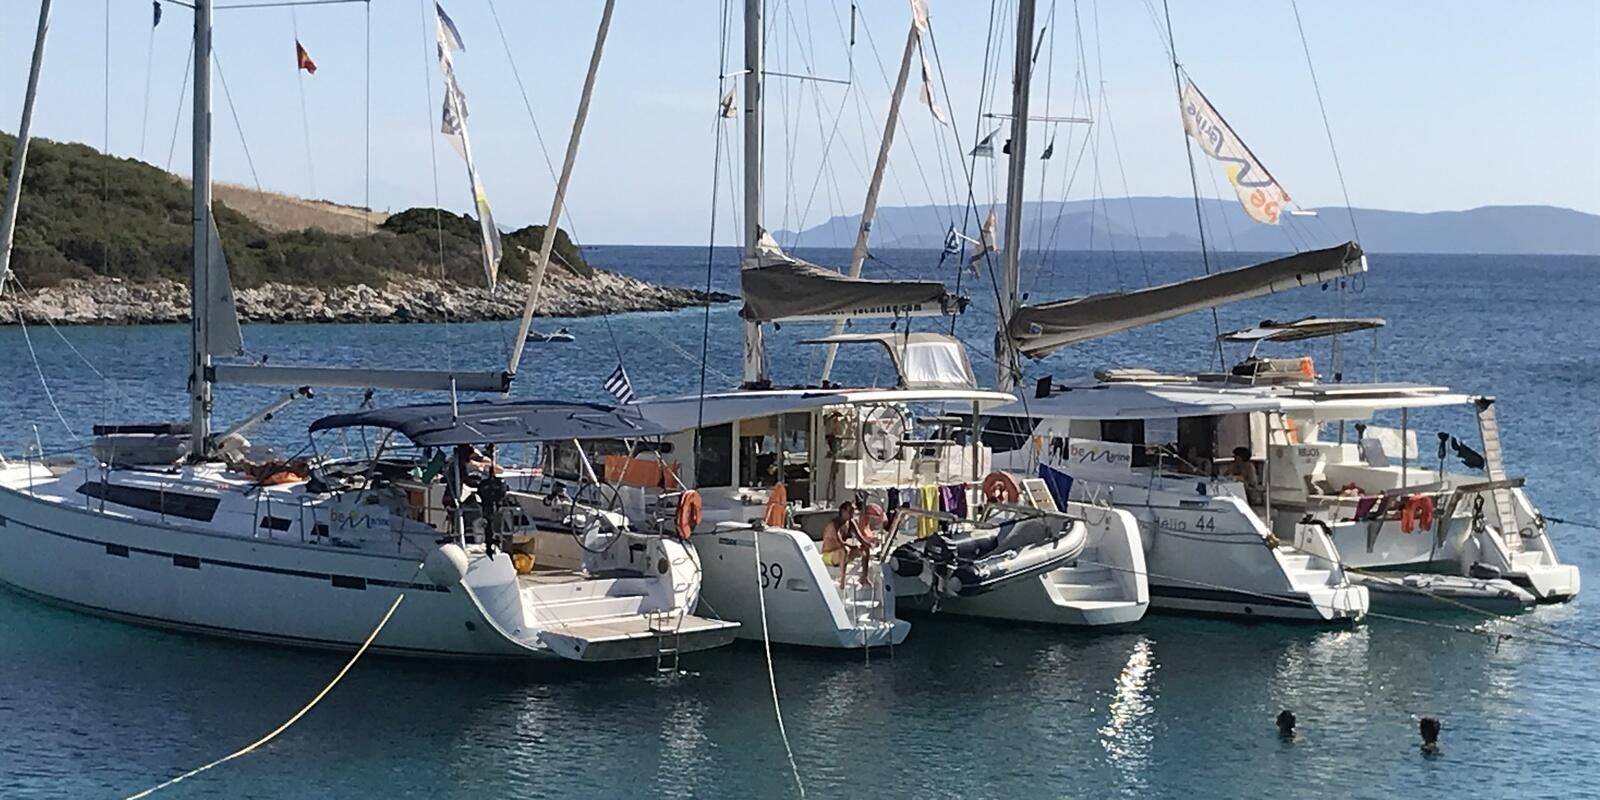 Flotilla of 2 Catamarans between Maddalena and Corsica. You're one of us?